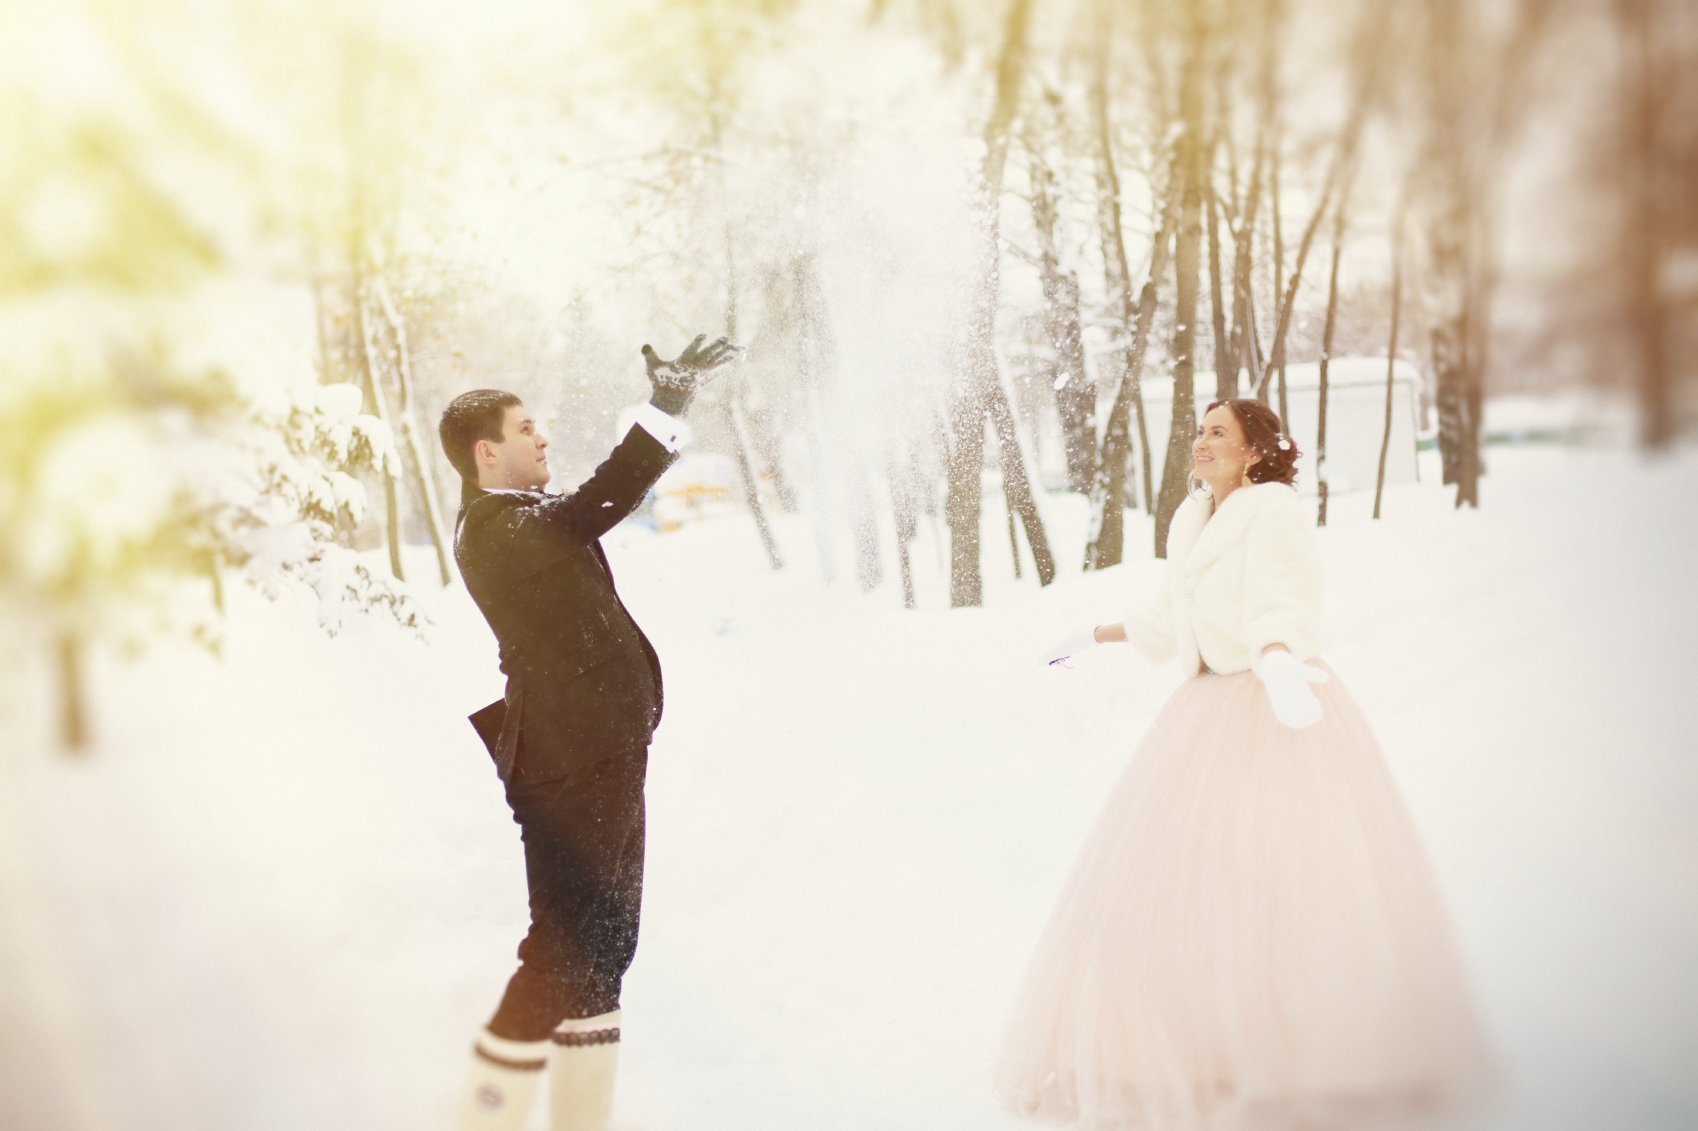 Newlyweds in the winter park